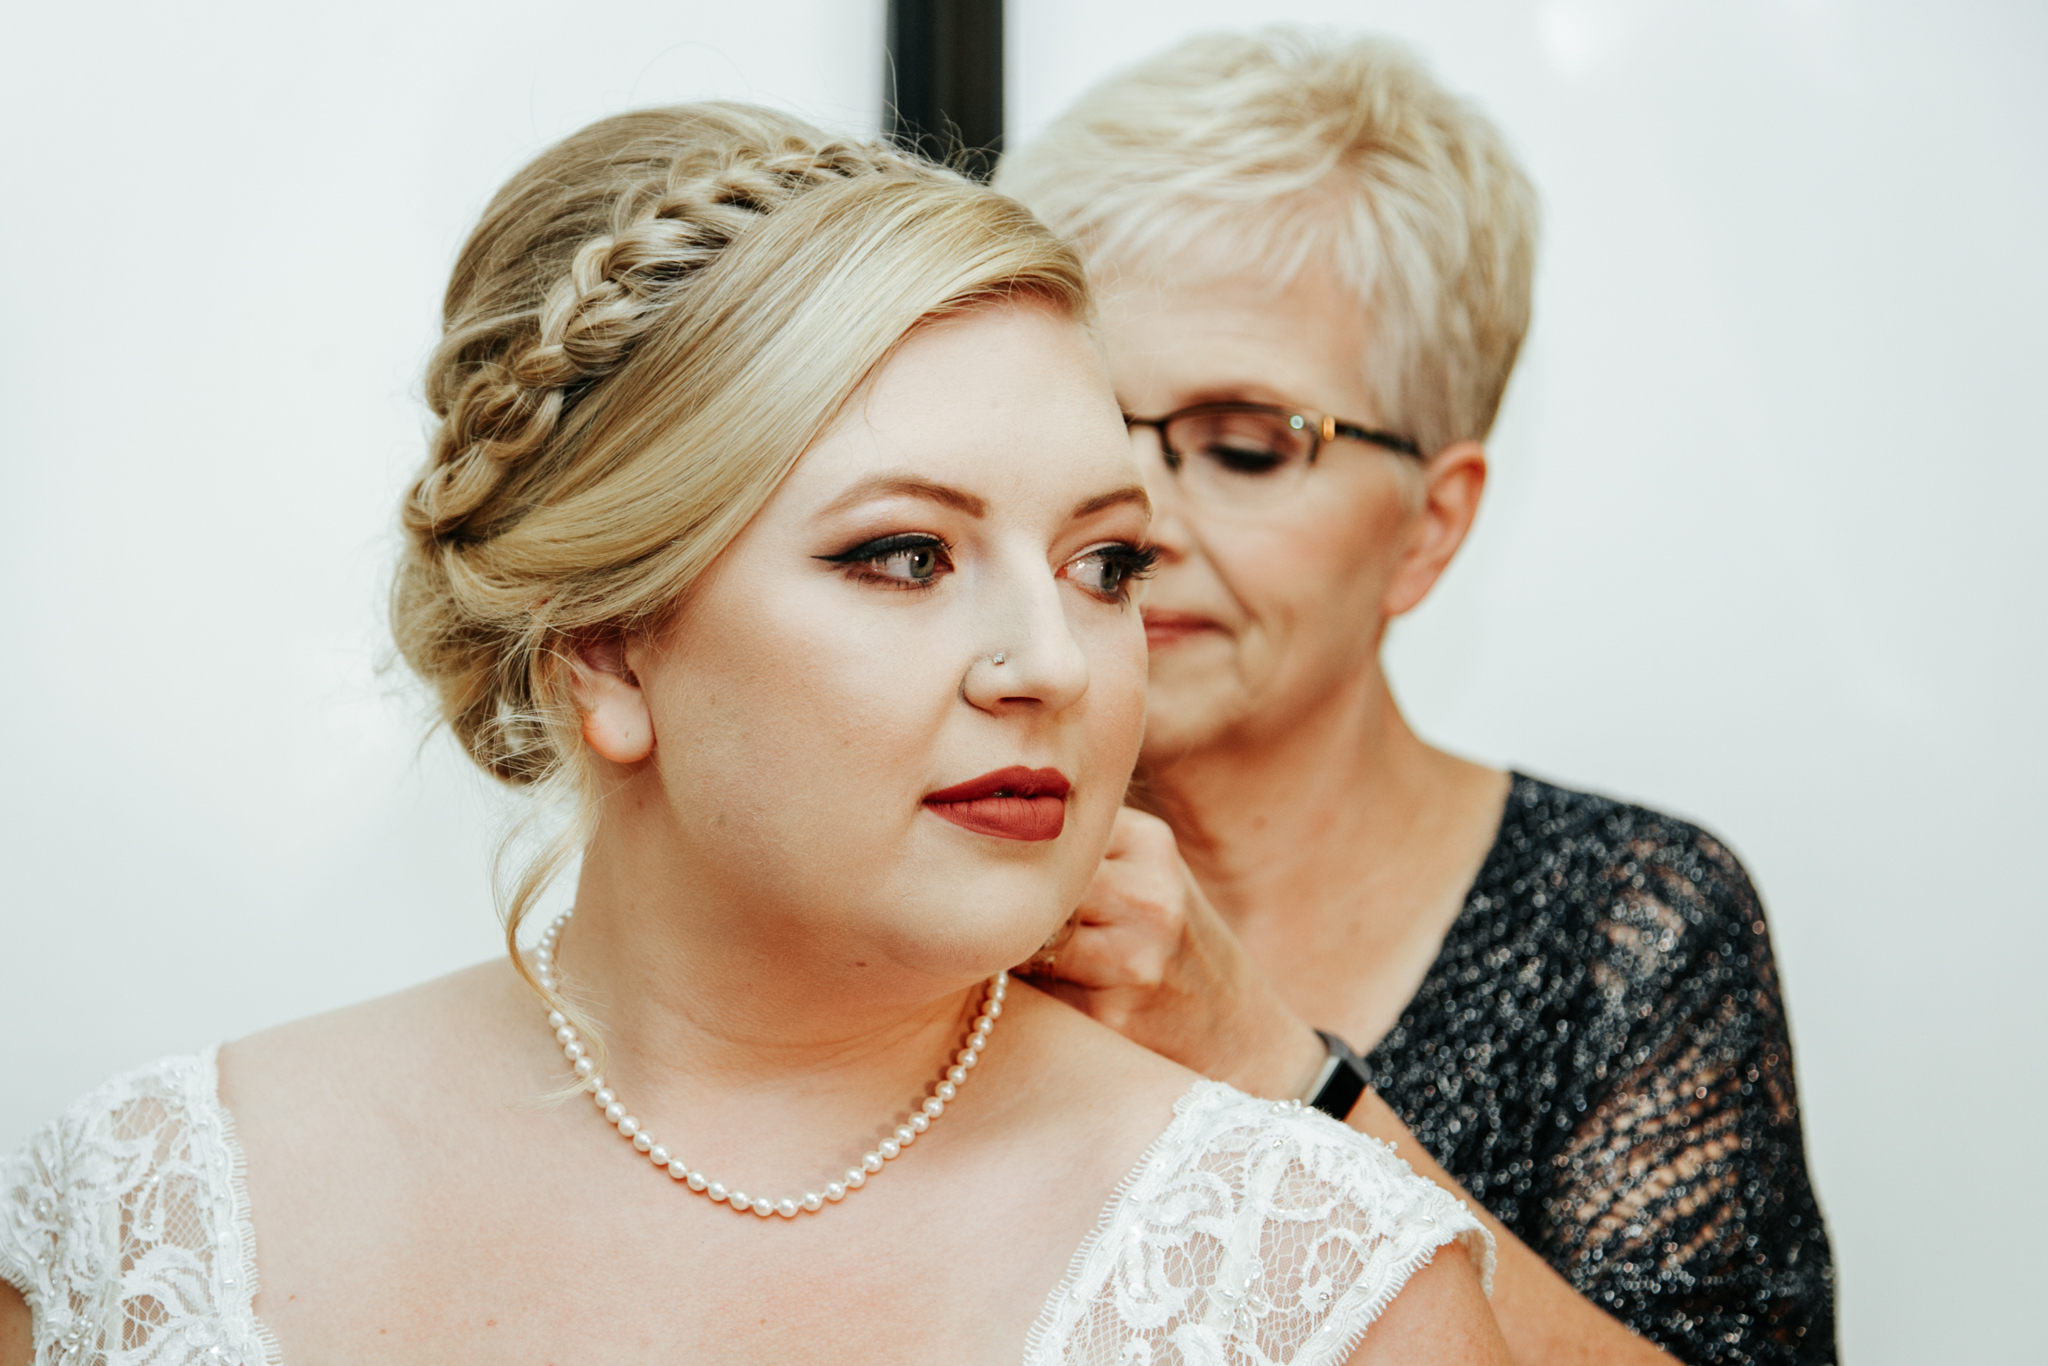 red-deer-wedding-photographer-love-and-be-loved-photography-emily-gab-photo-image-picture-18-2.jpg